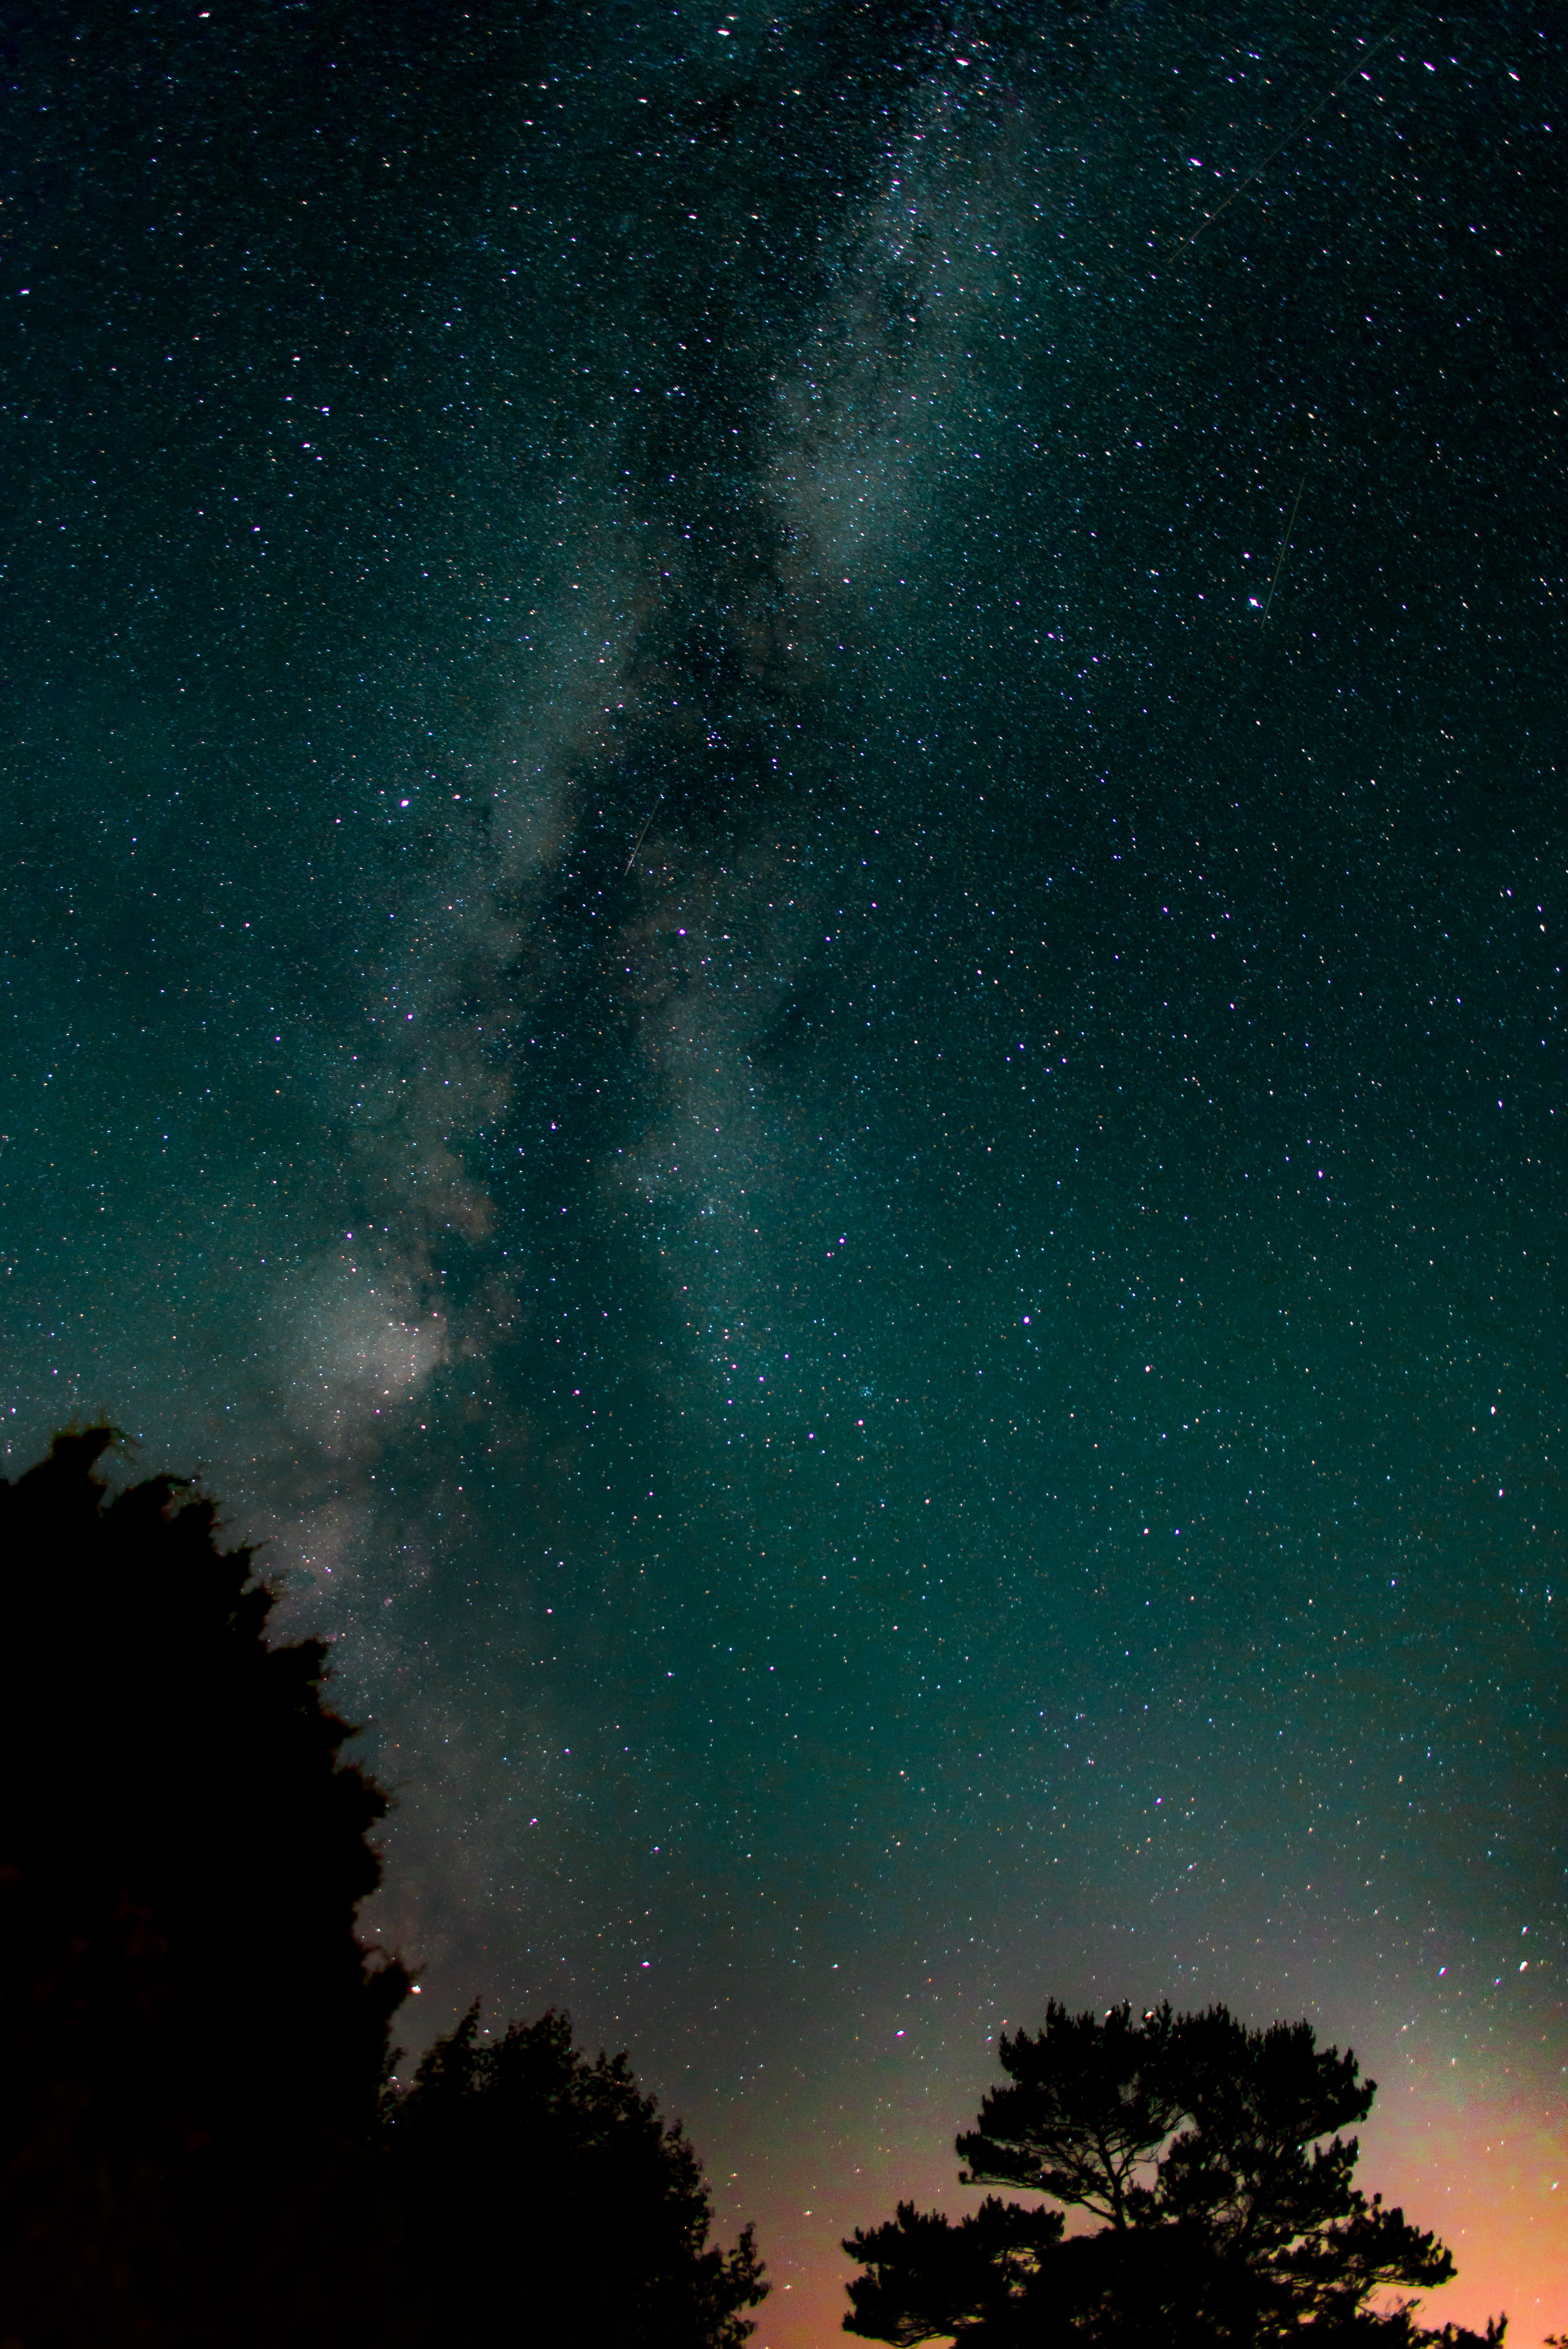 The Milky Way rises above the silhouette of trees in Chatham.